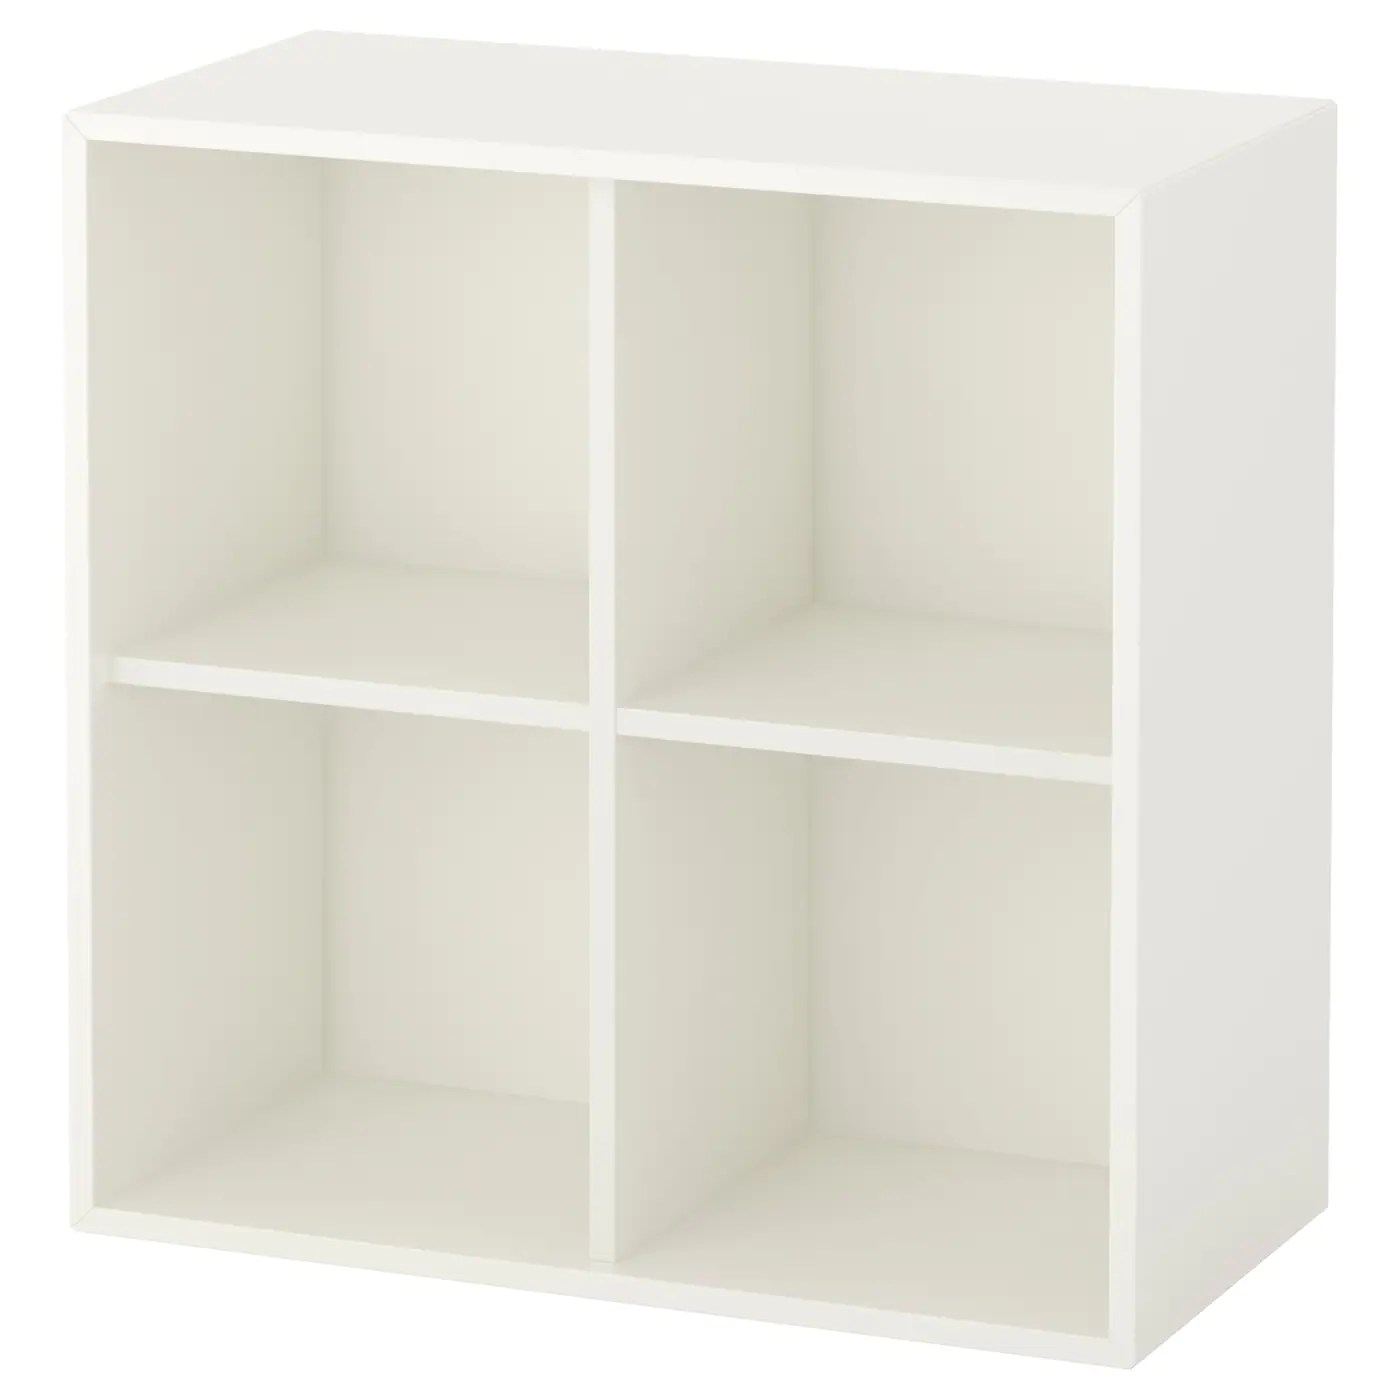 eket cabinet with 4 compartments white